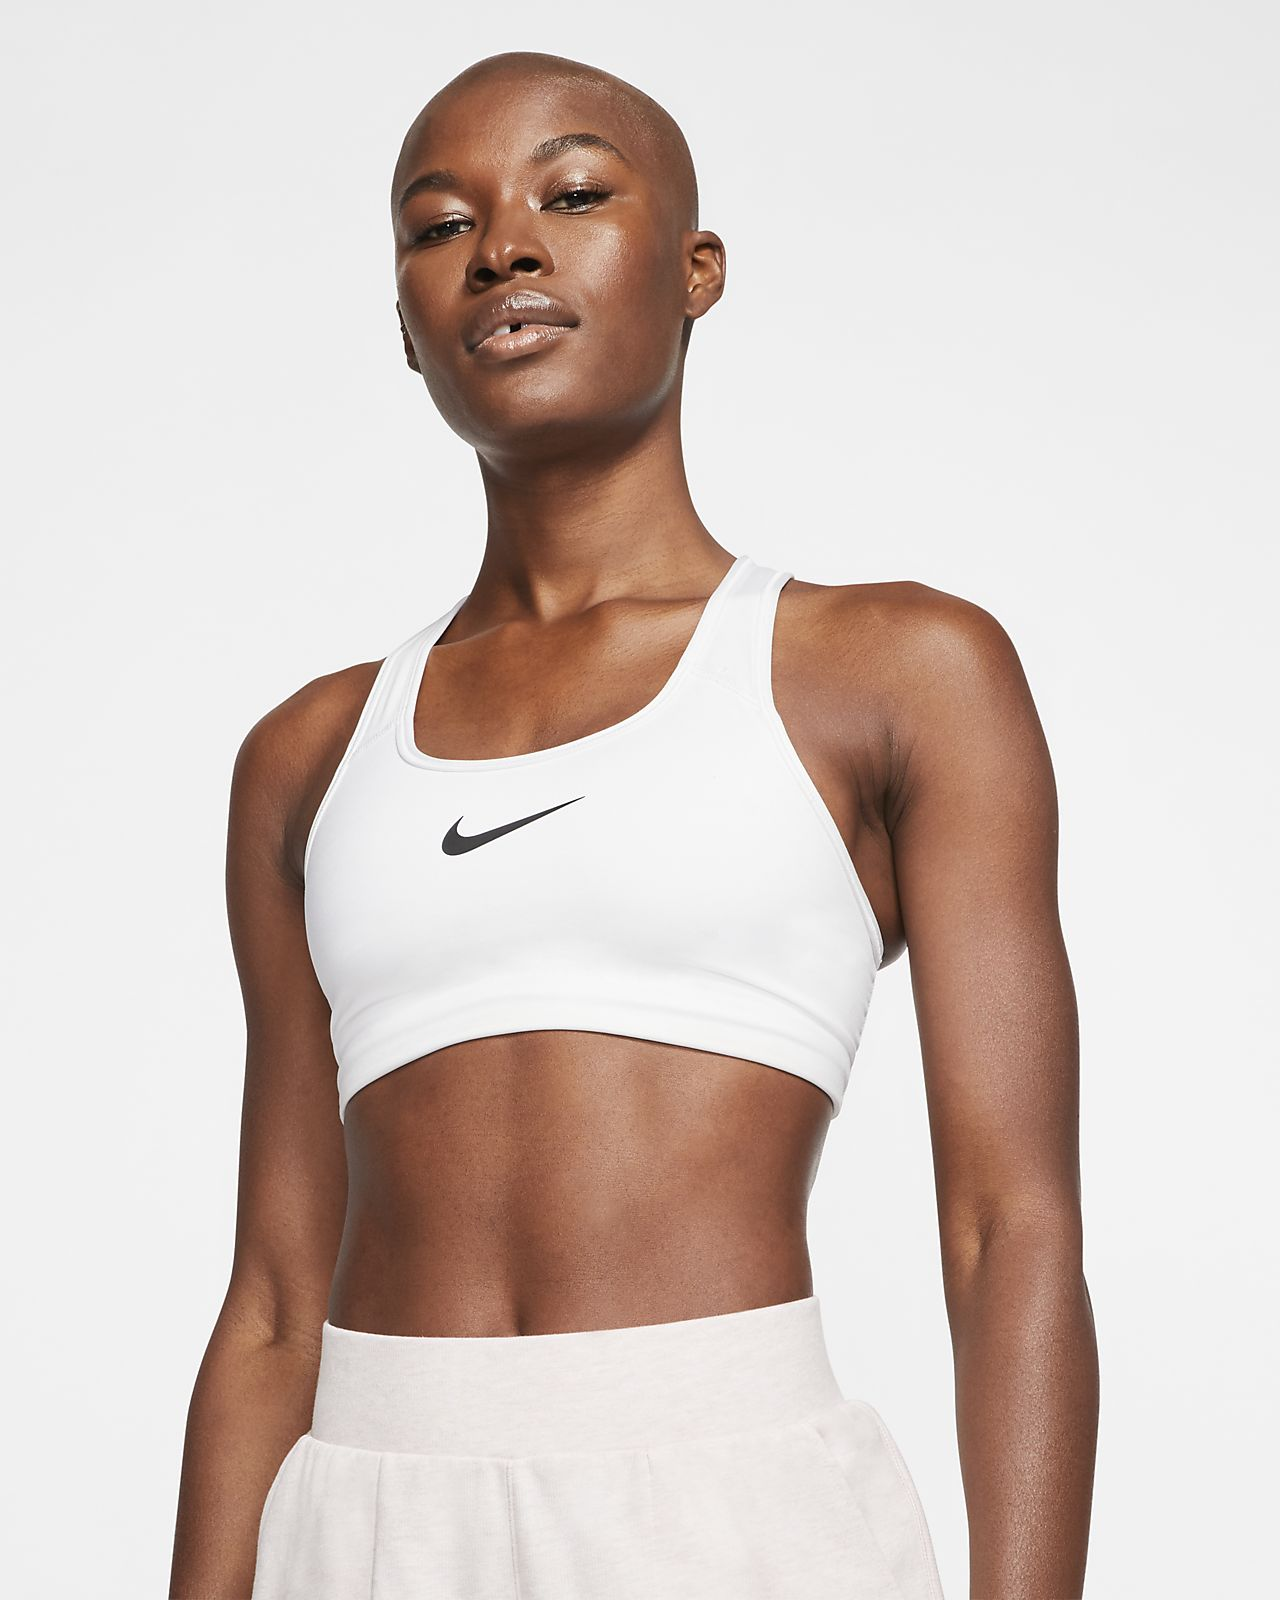 7fe2fb24a0 Nike Women s Swoosh Medium Support Sports Bra. Nike.com